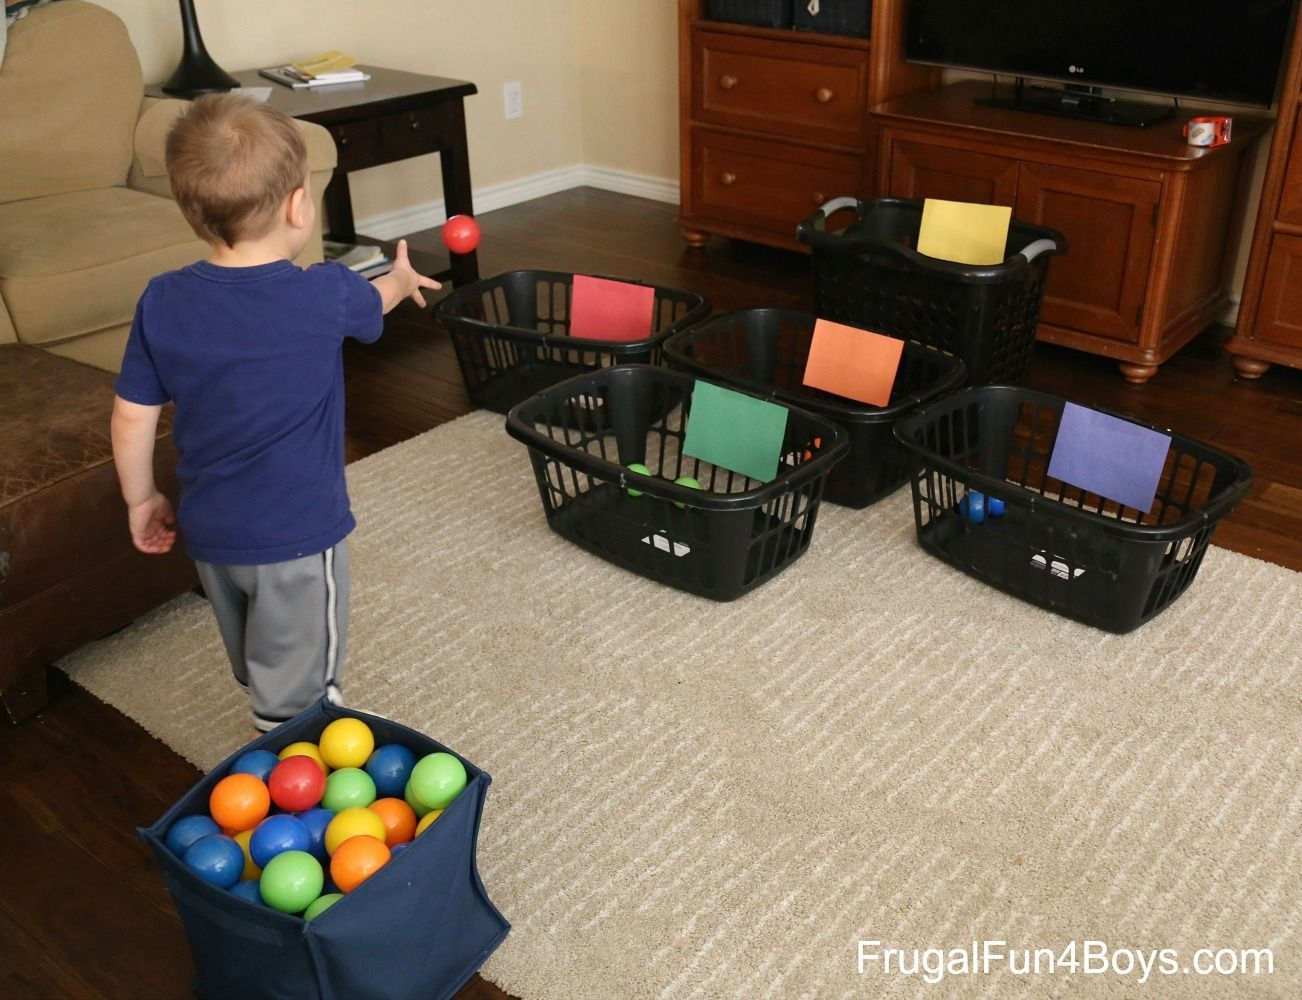 10 Ball Games For Kids Ideas For Active Play Indoors Here Are